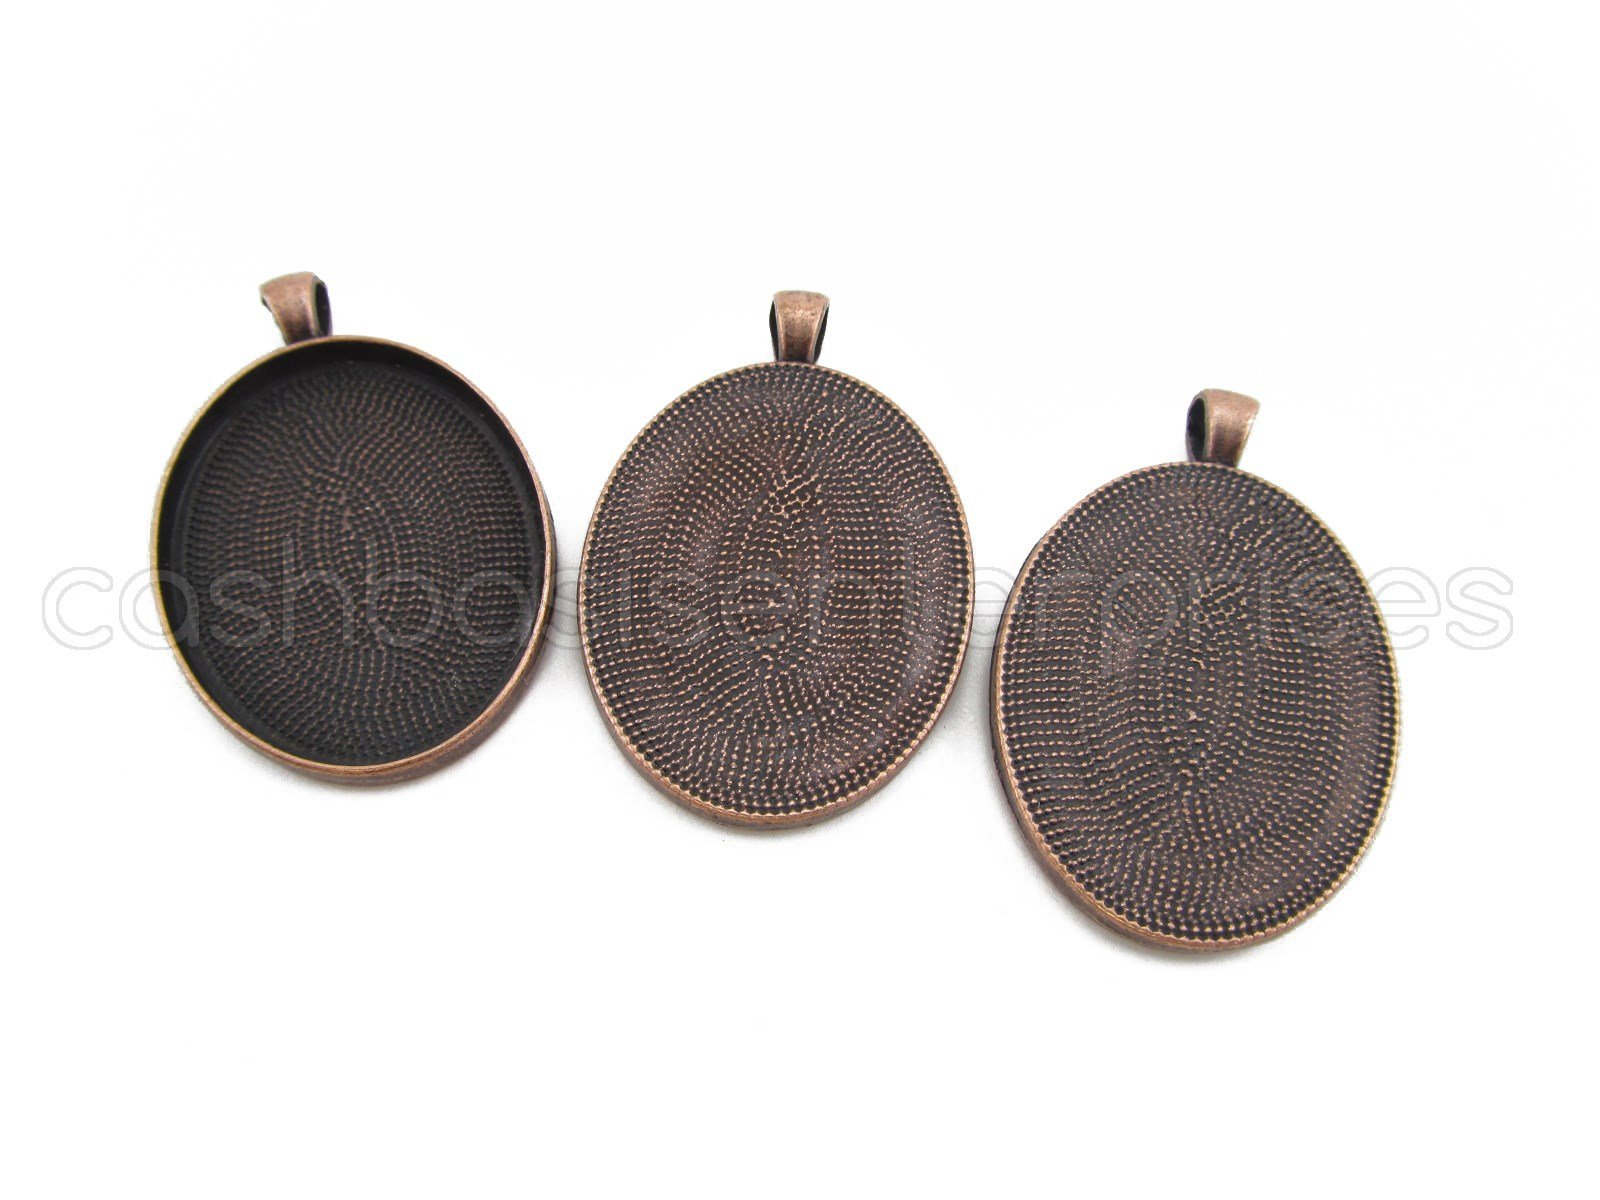 10 CleverDelights Oval Pendant Trays - Antique Copper Color - 30 x 40 mm - Pendant Blanks Cameo Bezel Cabochon Settings - 30x40mm